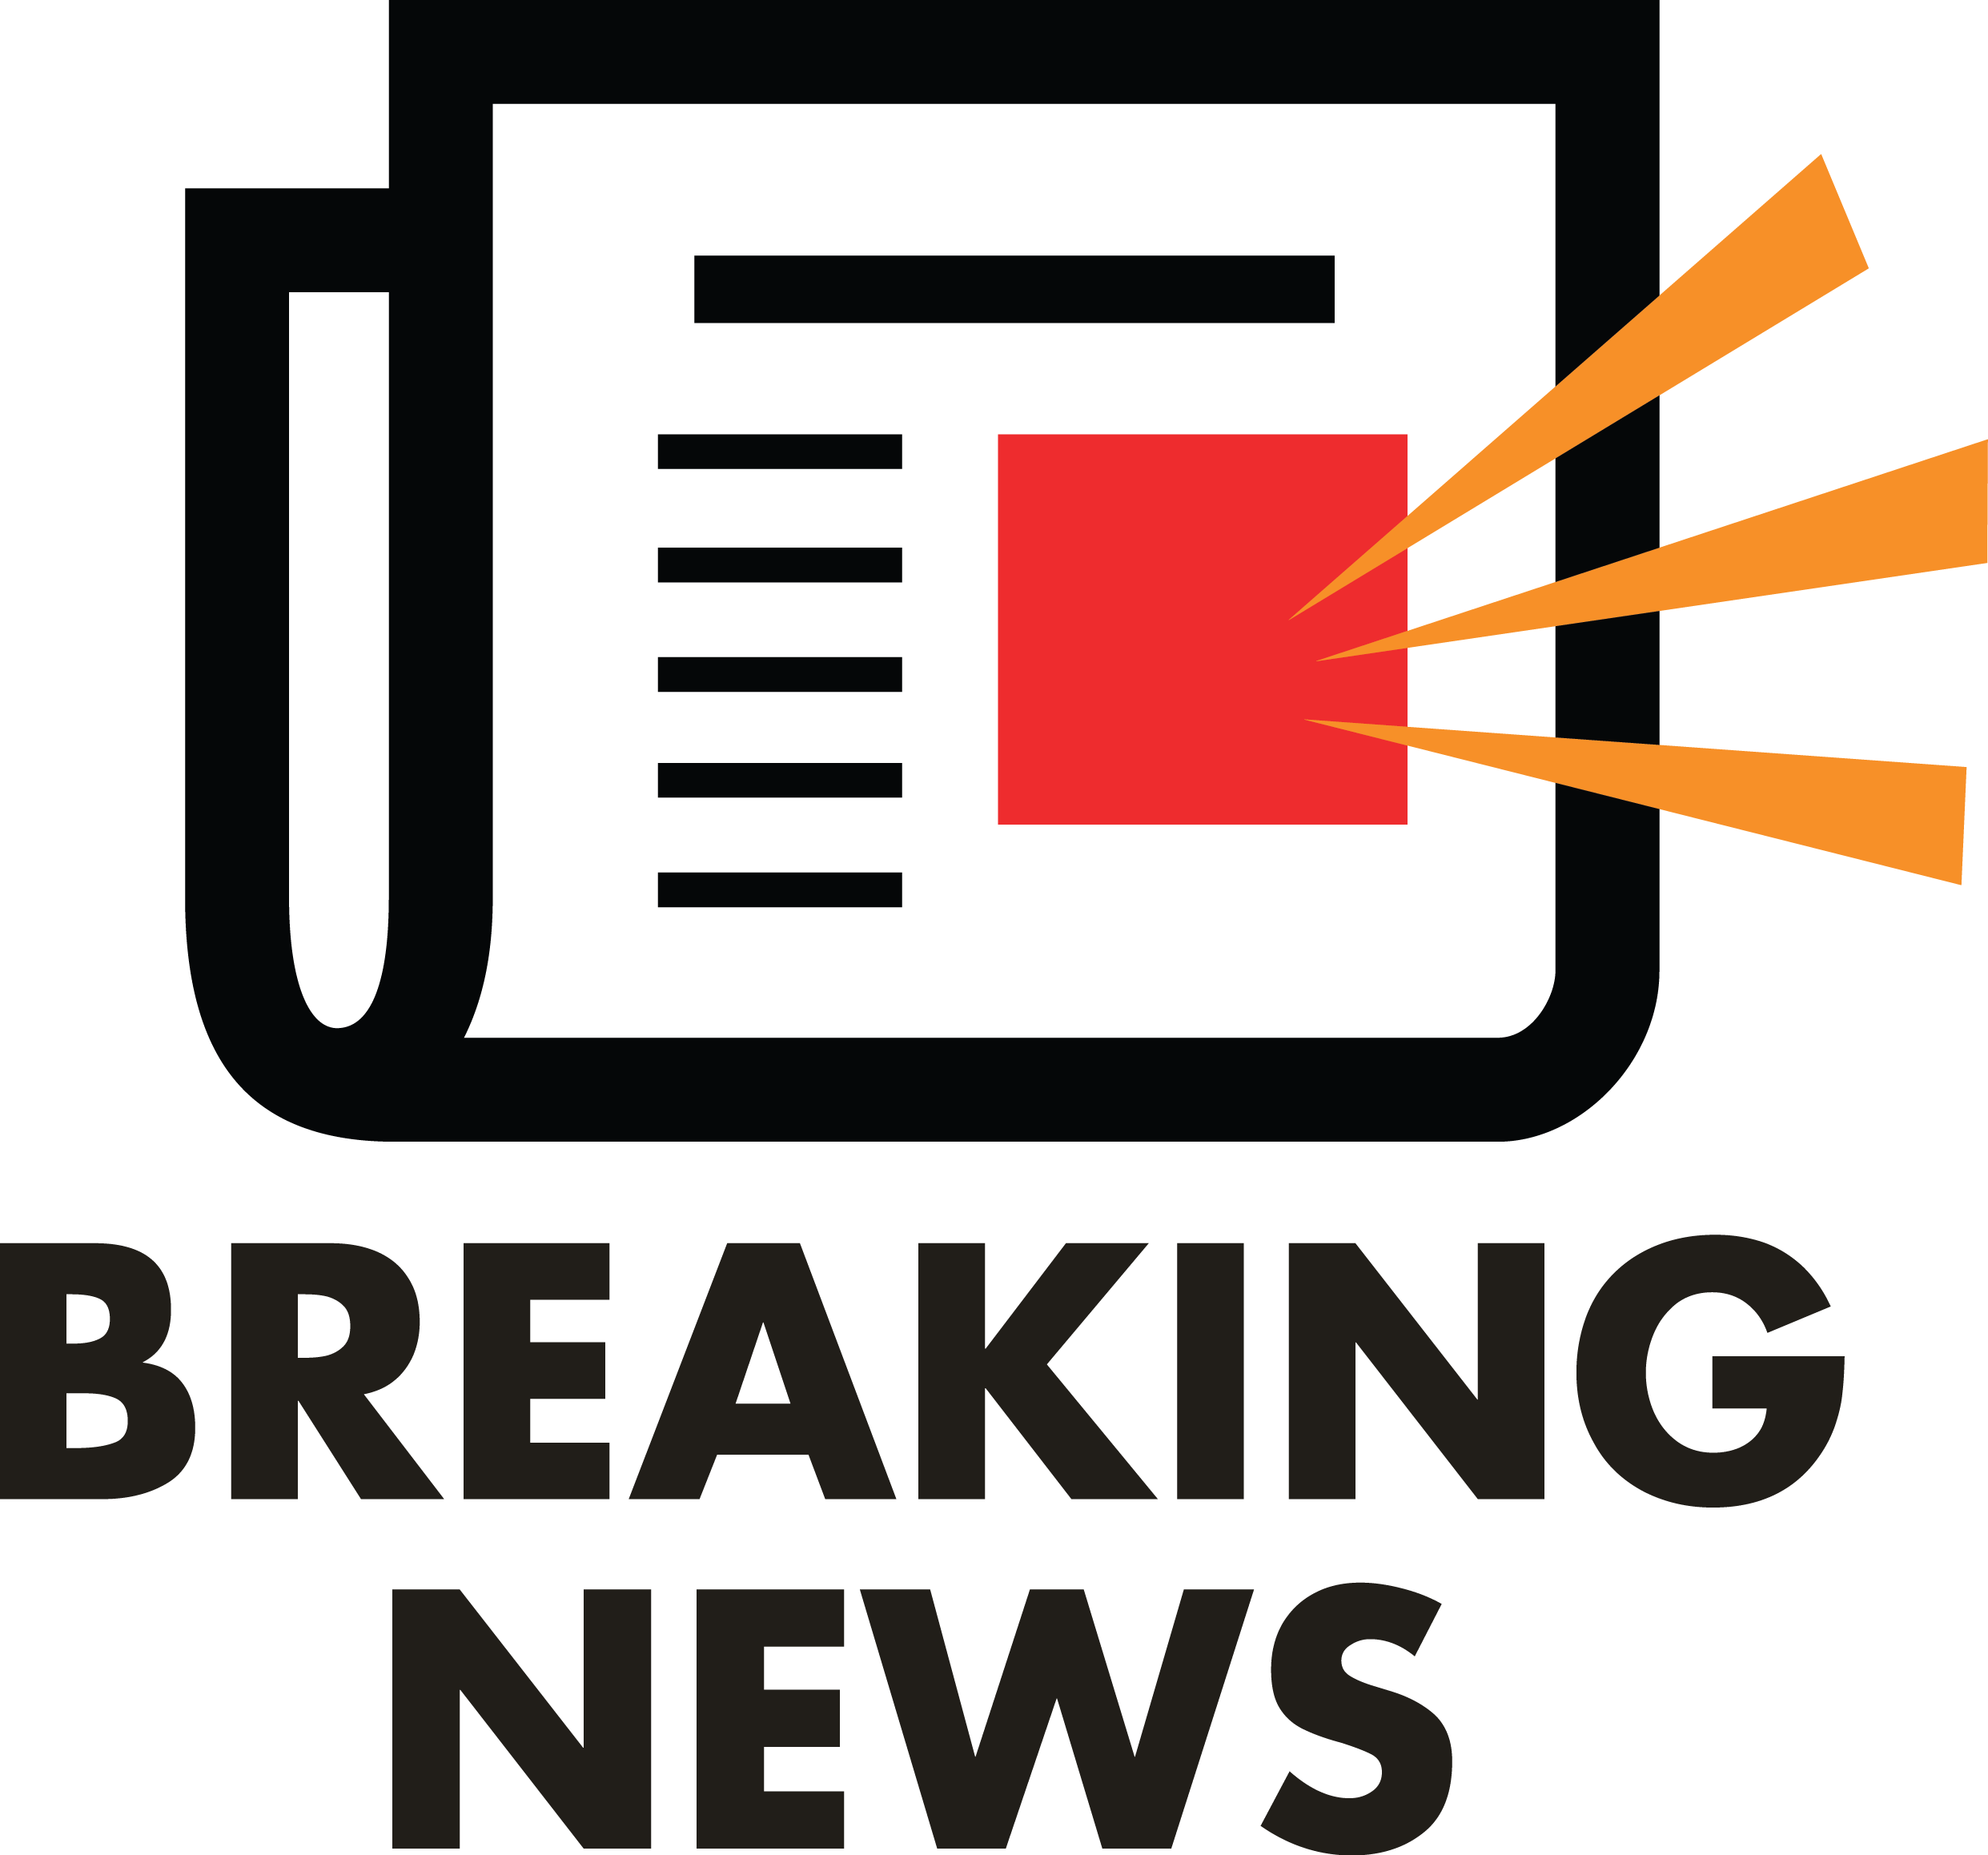 breaking news clipart - photo #13